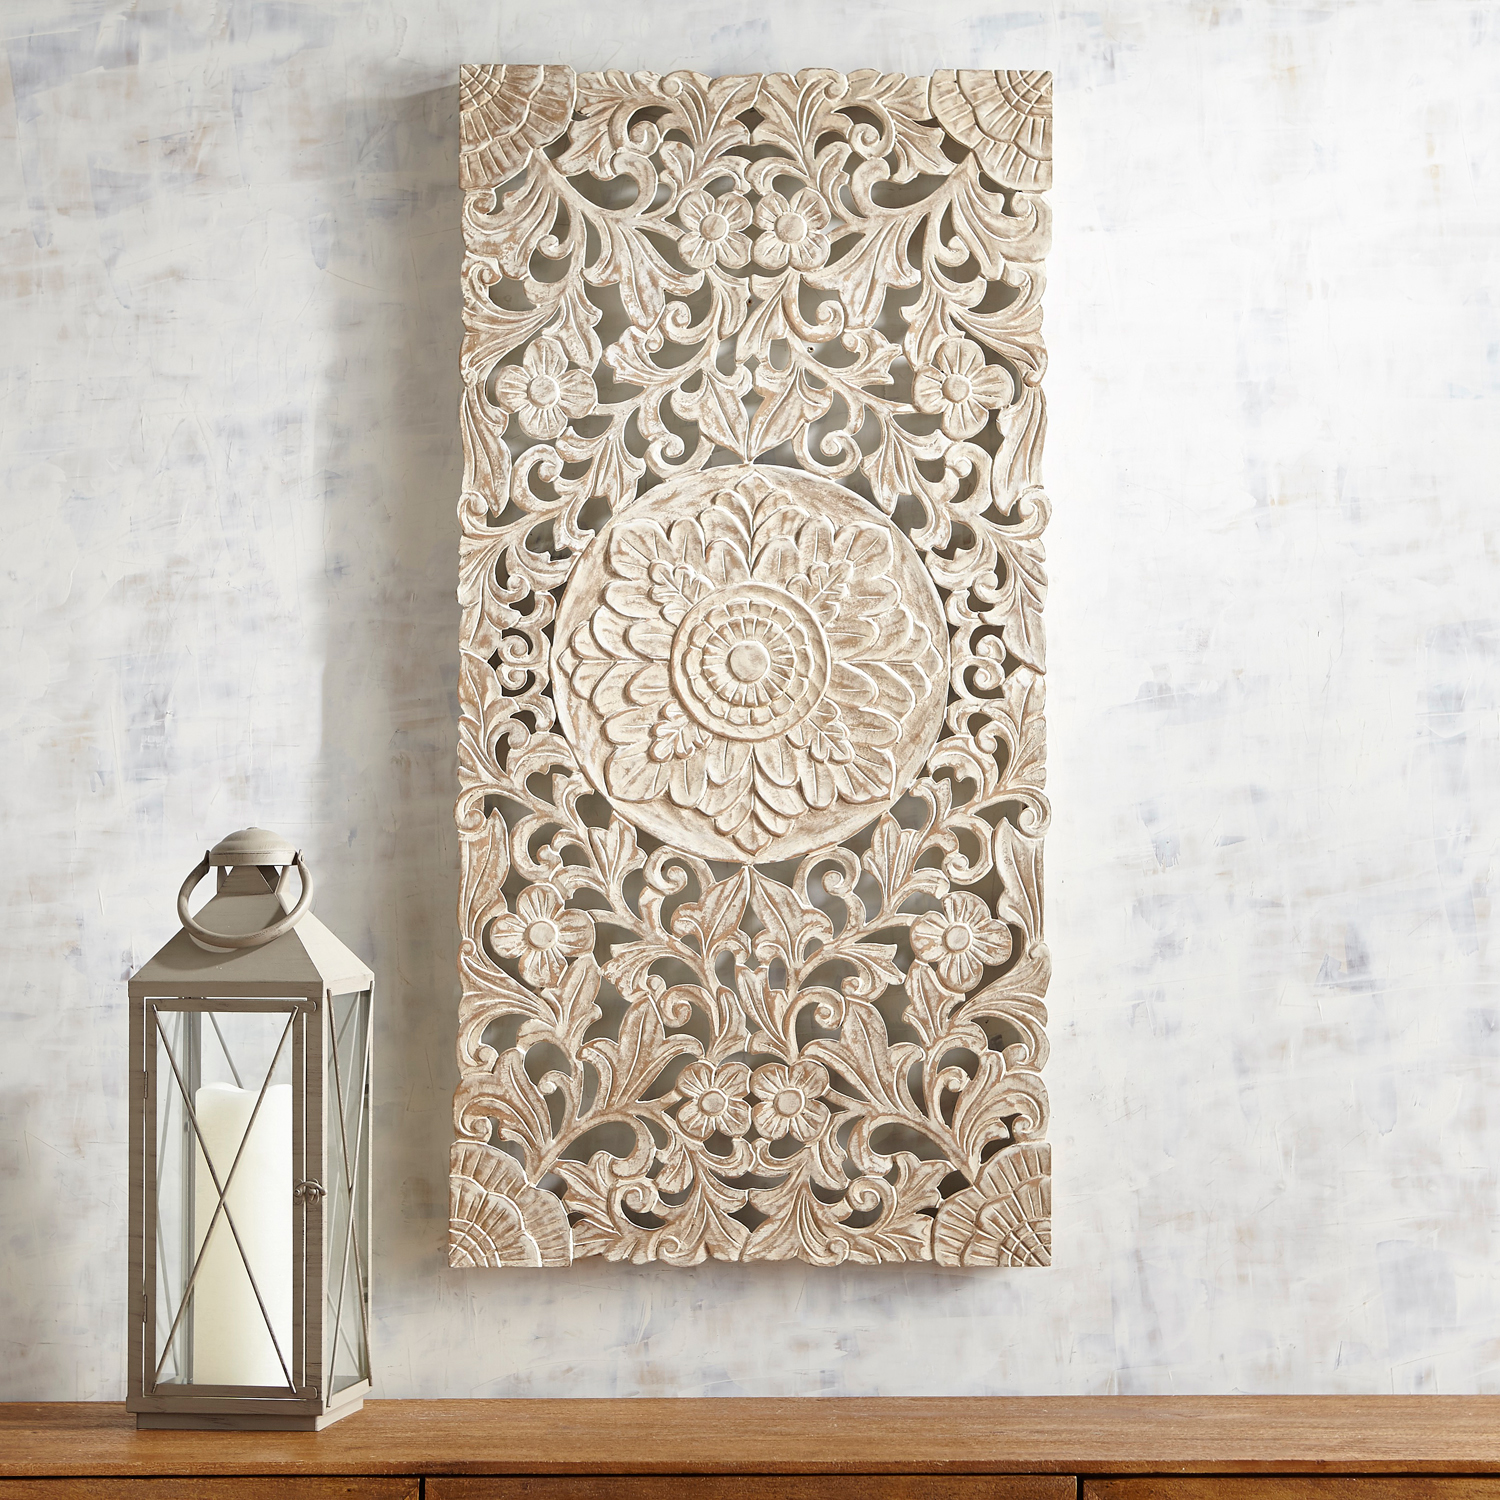 Hand-Carved White Floral Wall Panel